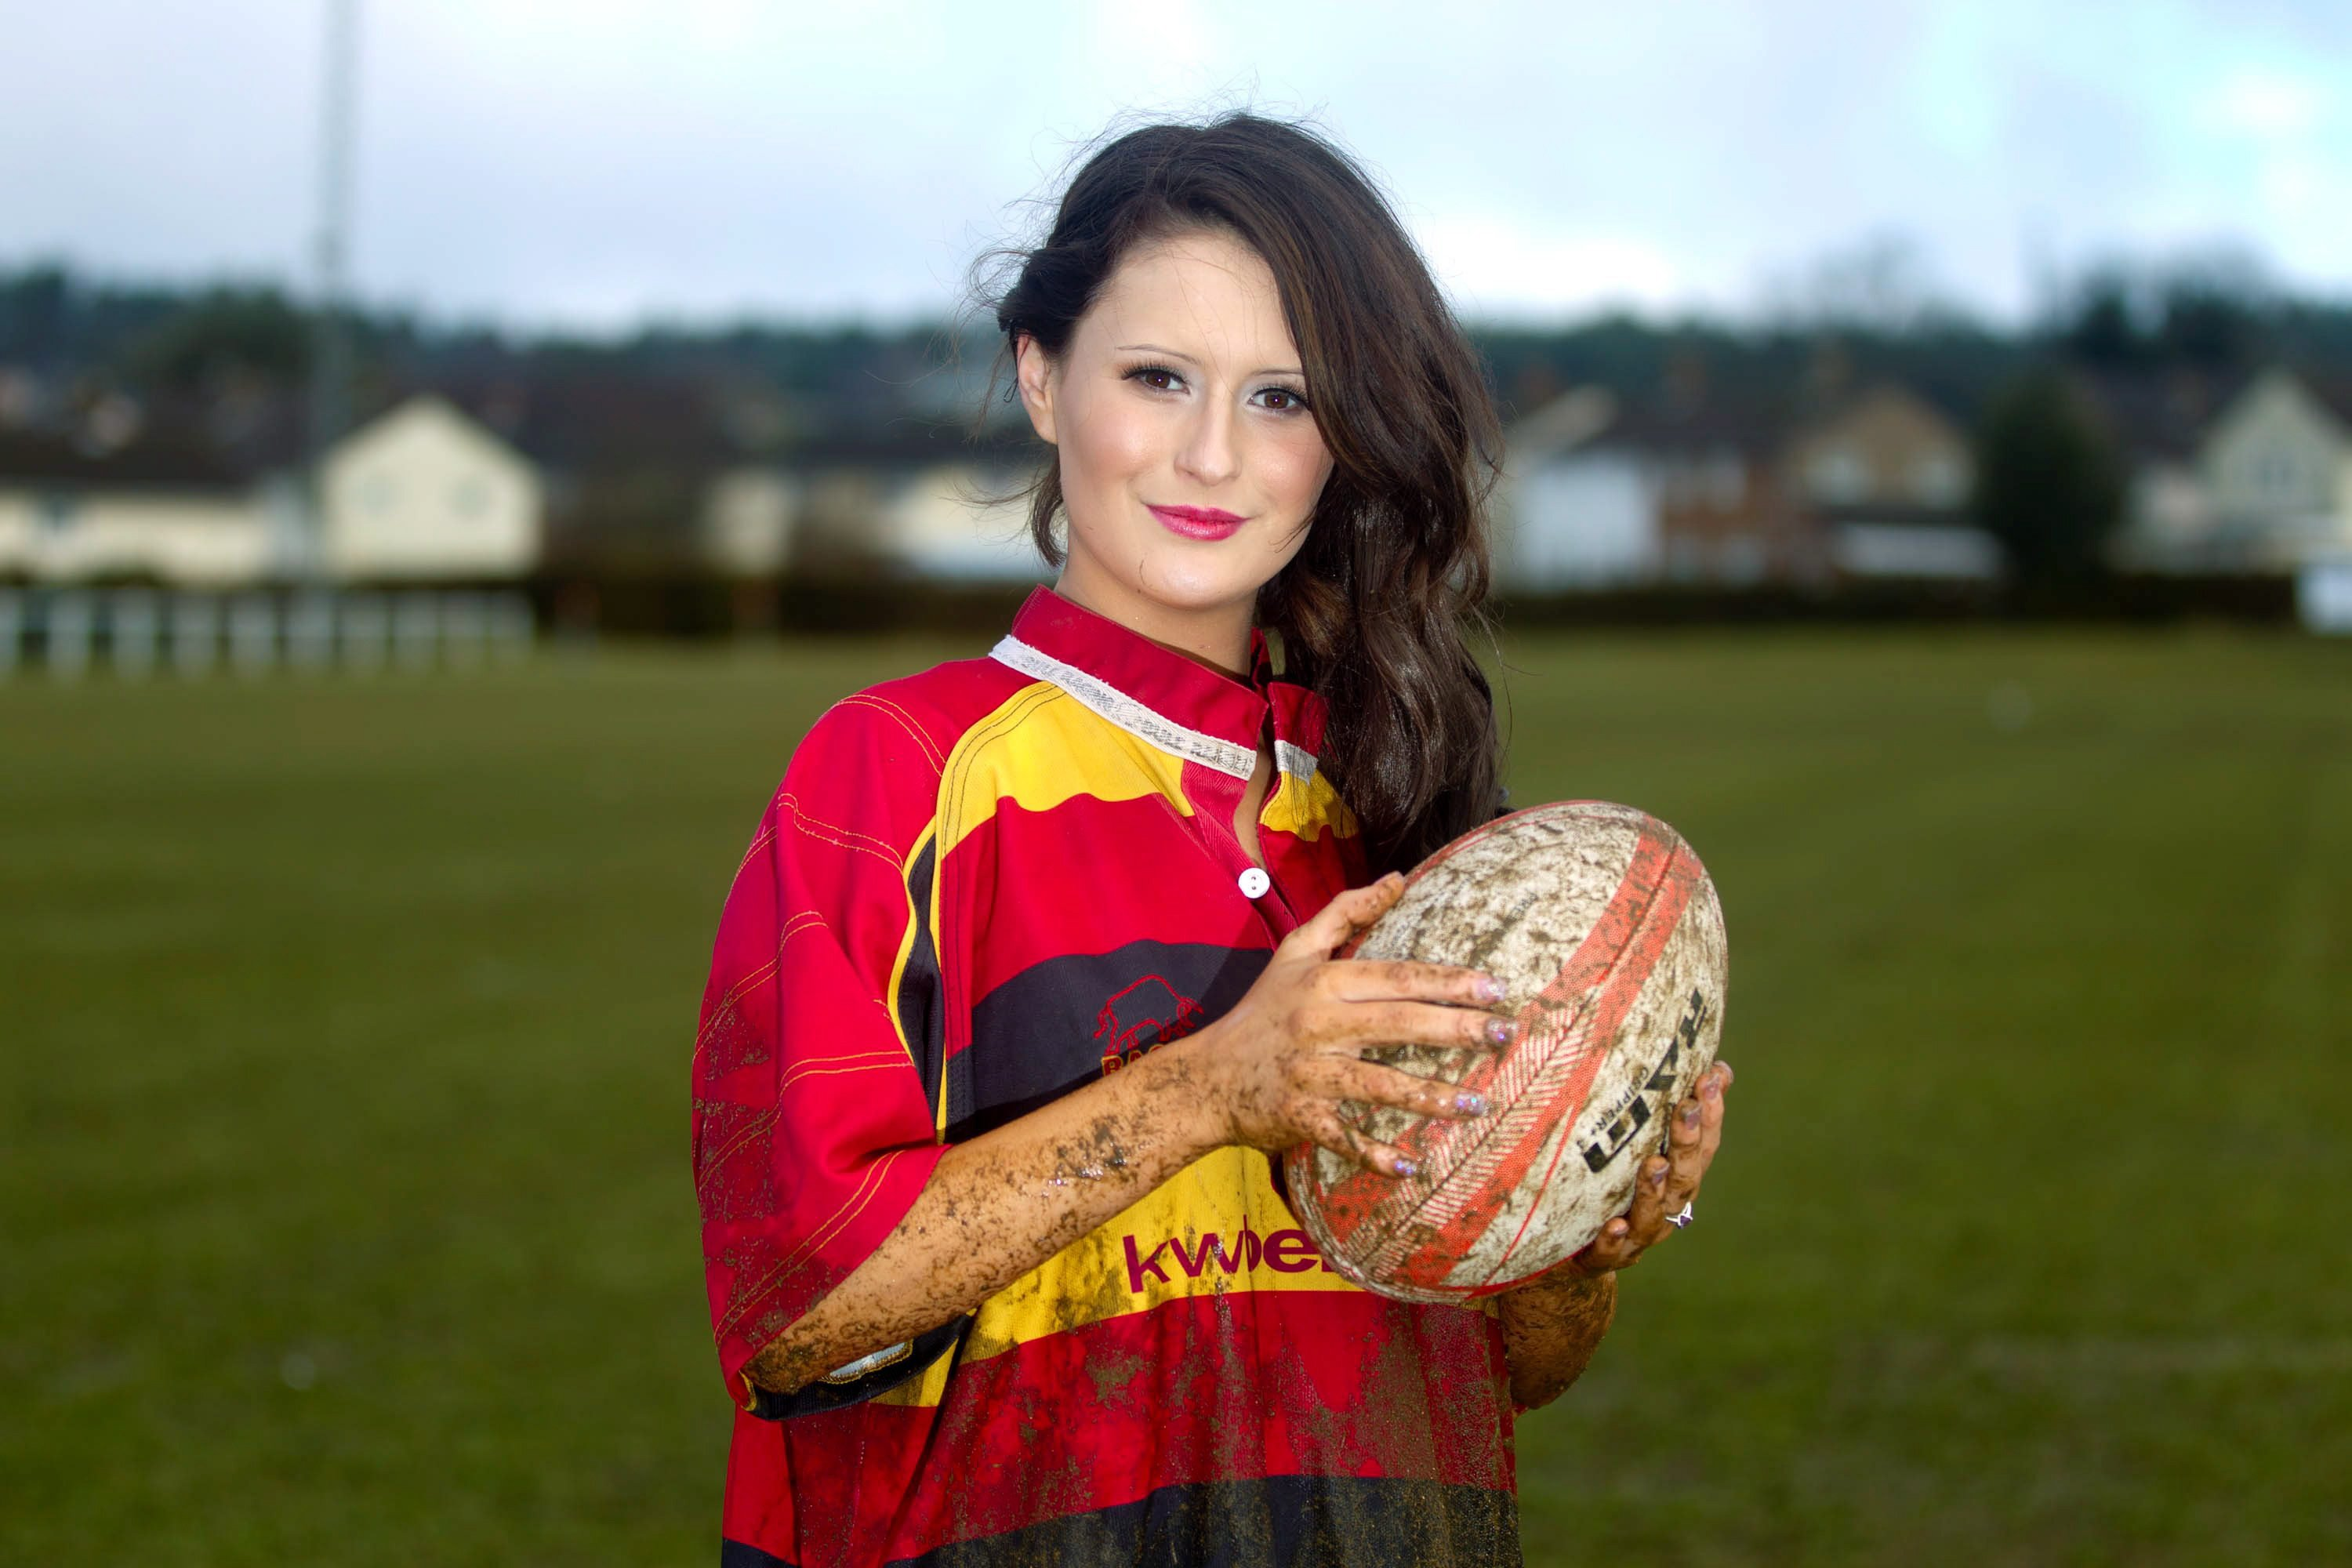 NTI_RUGBY_BEAUTY_43